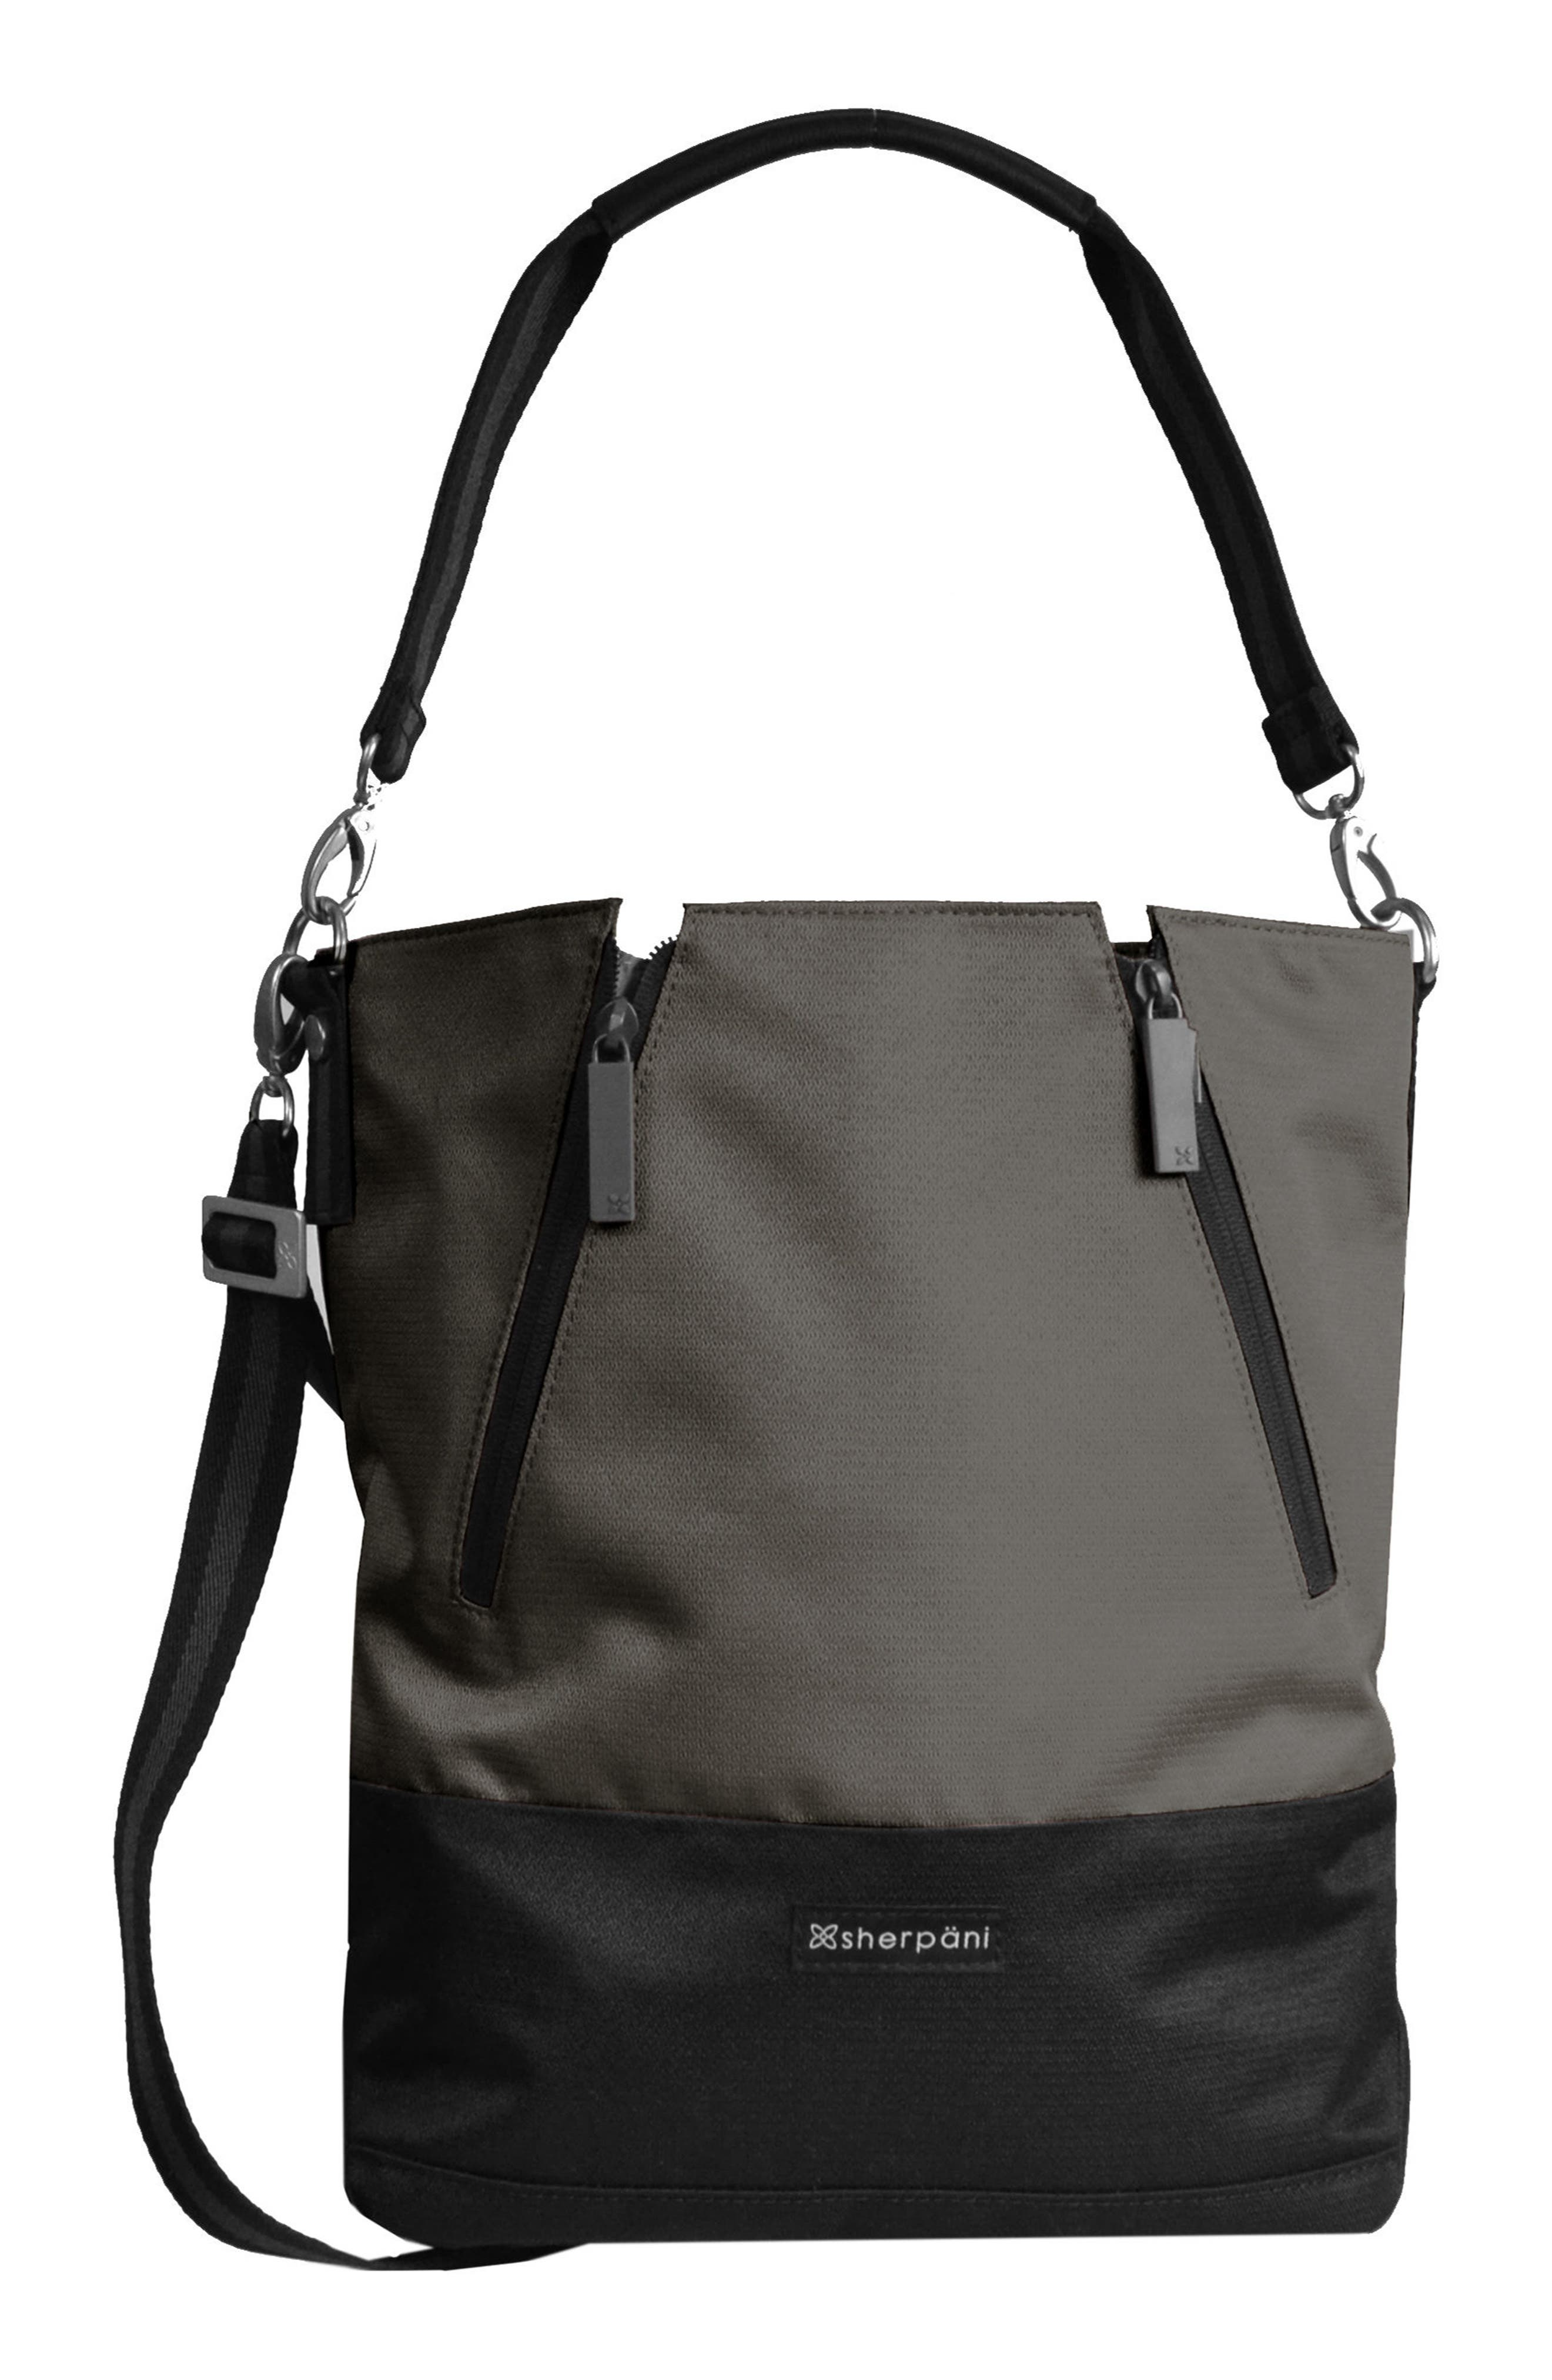 Sherpani Devyn Bucket Bag